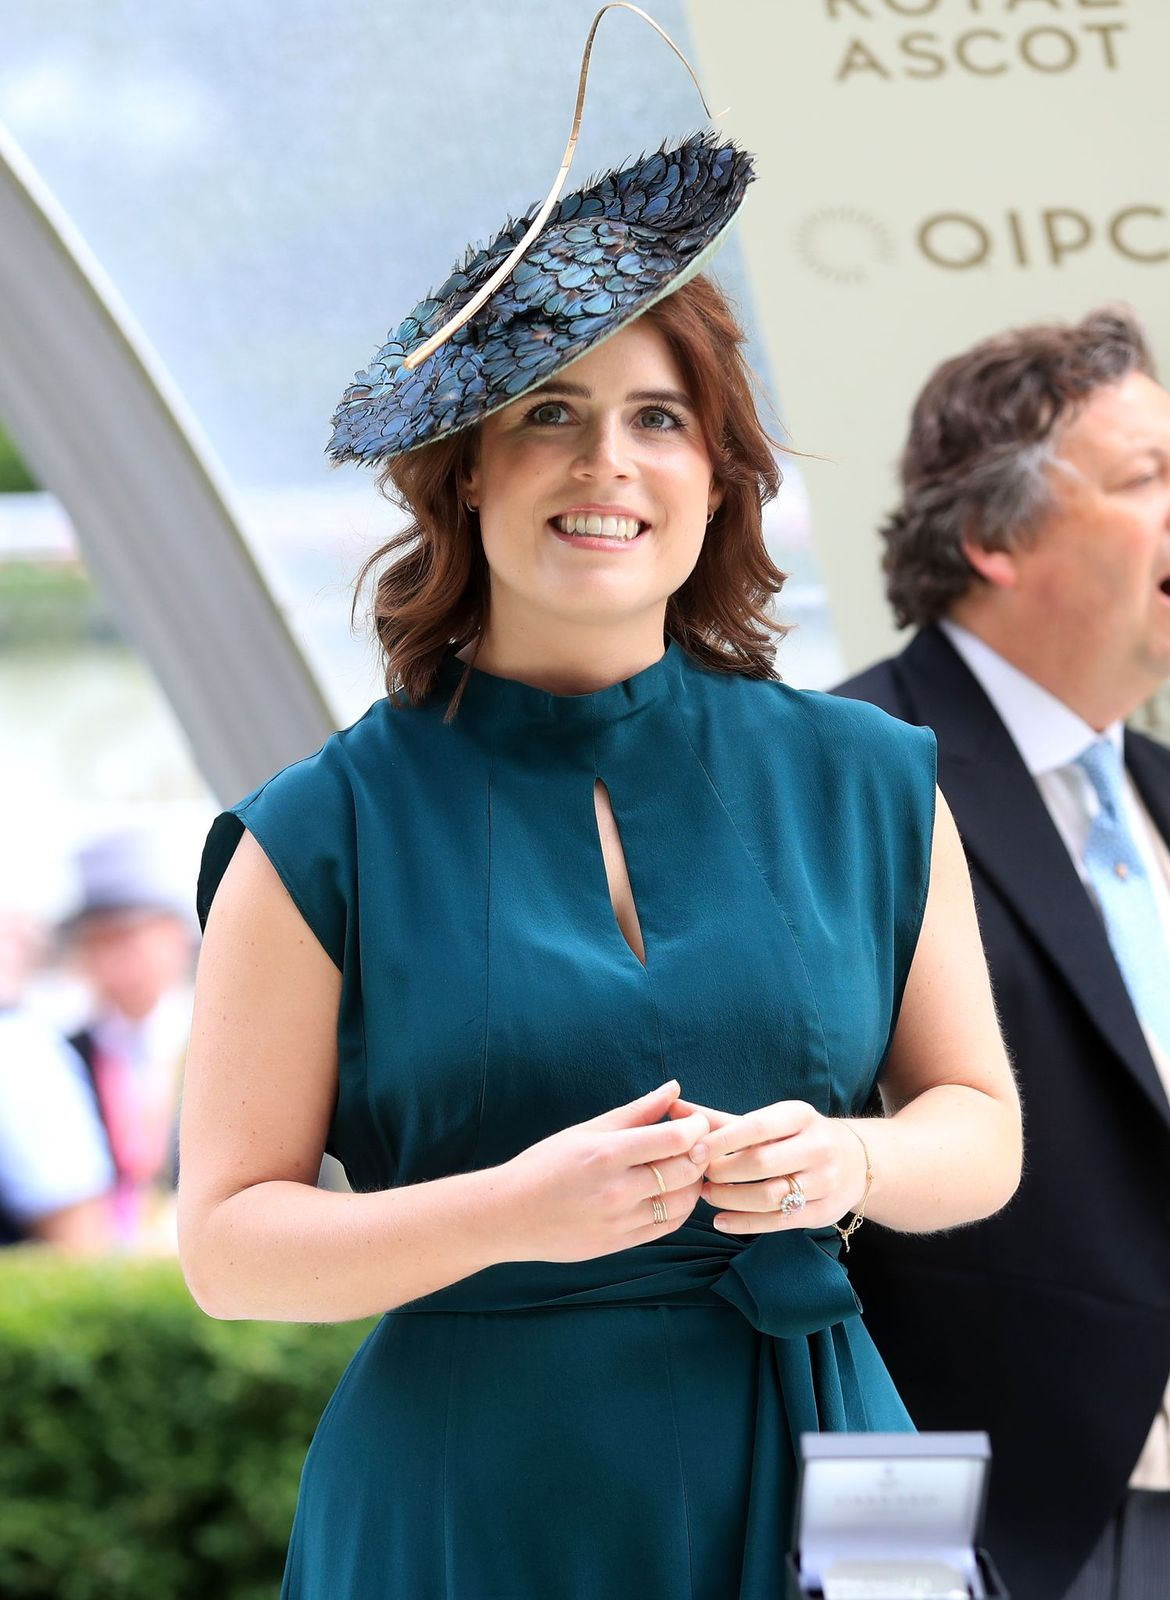 Princess Eugenie in the winner's enclosure during day three of the Royal Ascot at Ascot Racecourse onJune 20, 2019| Photo:Adam Davy/PA Images/Getty Images